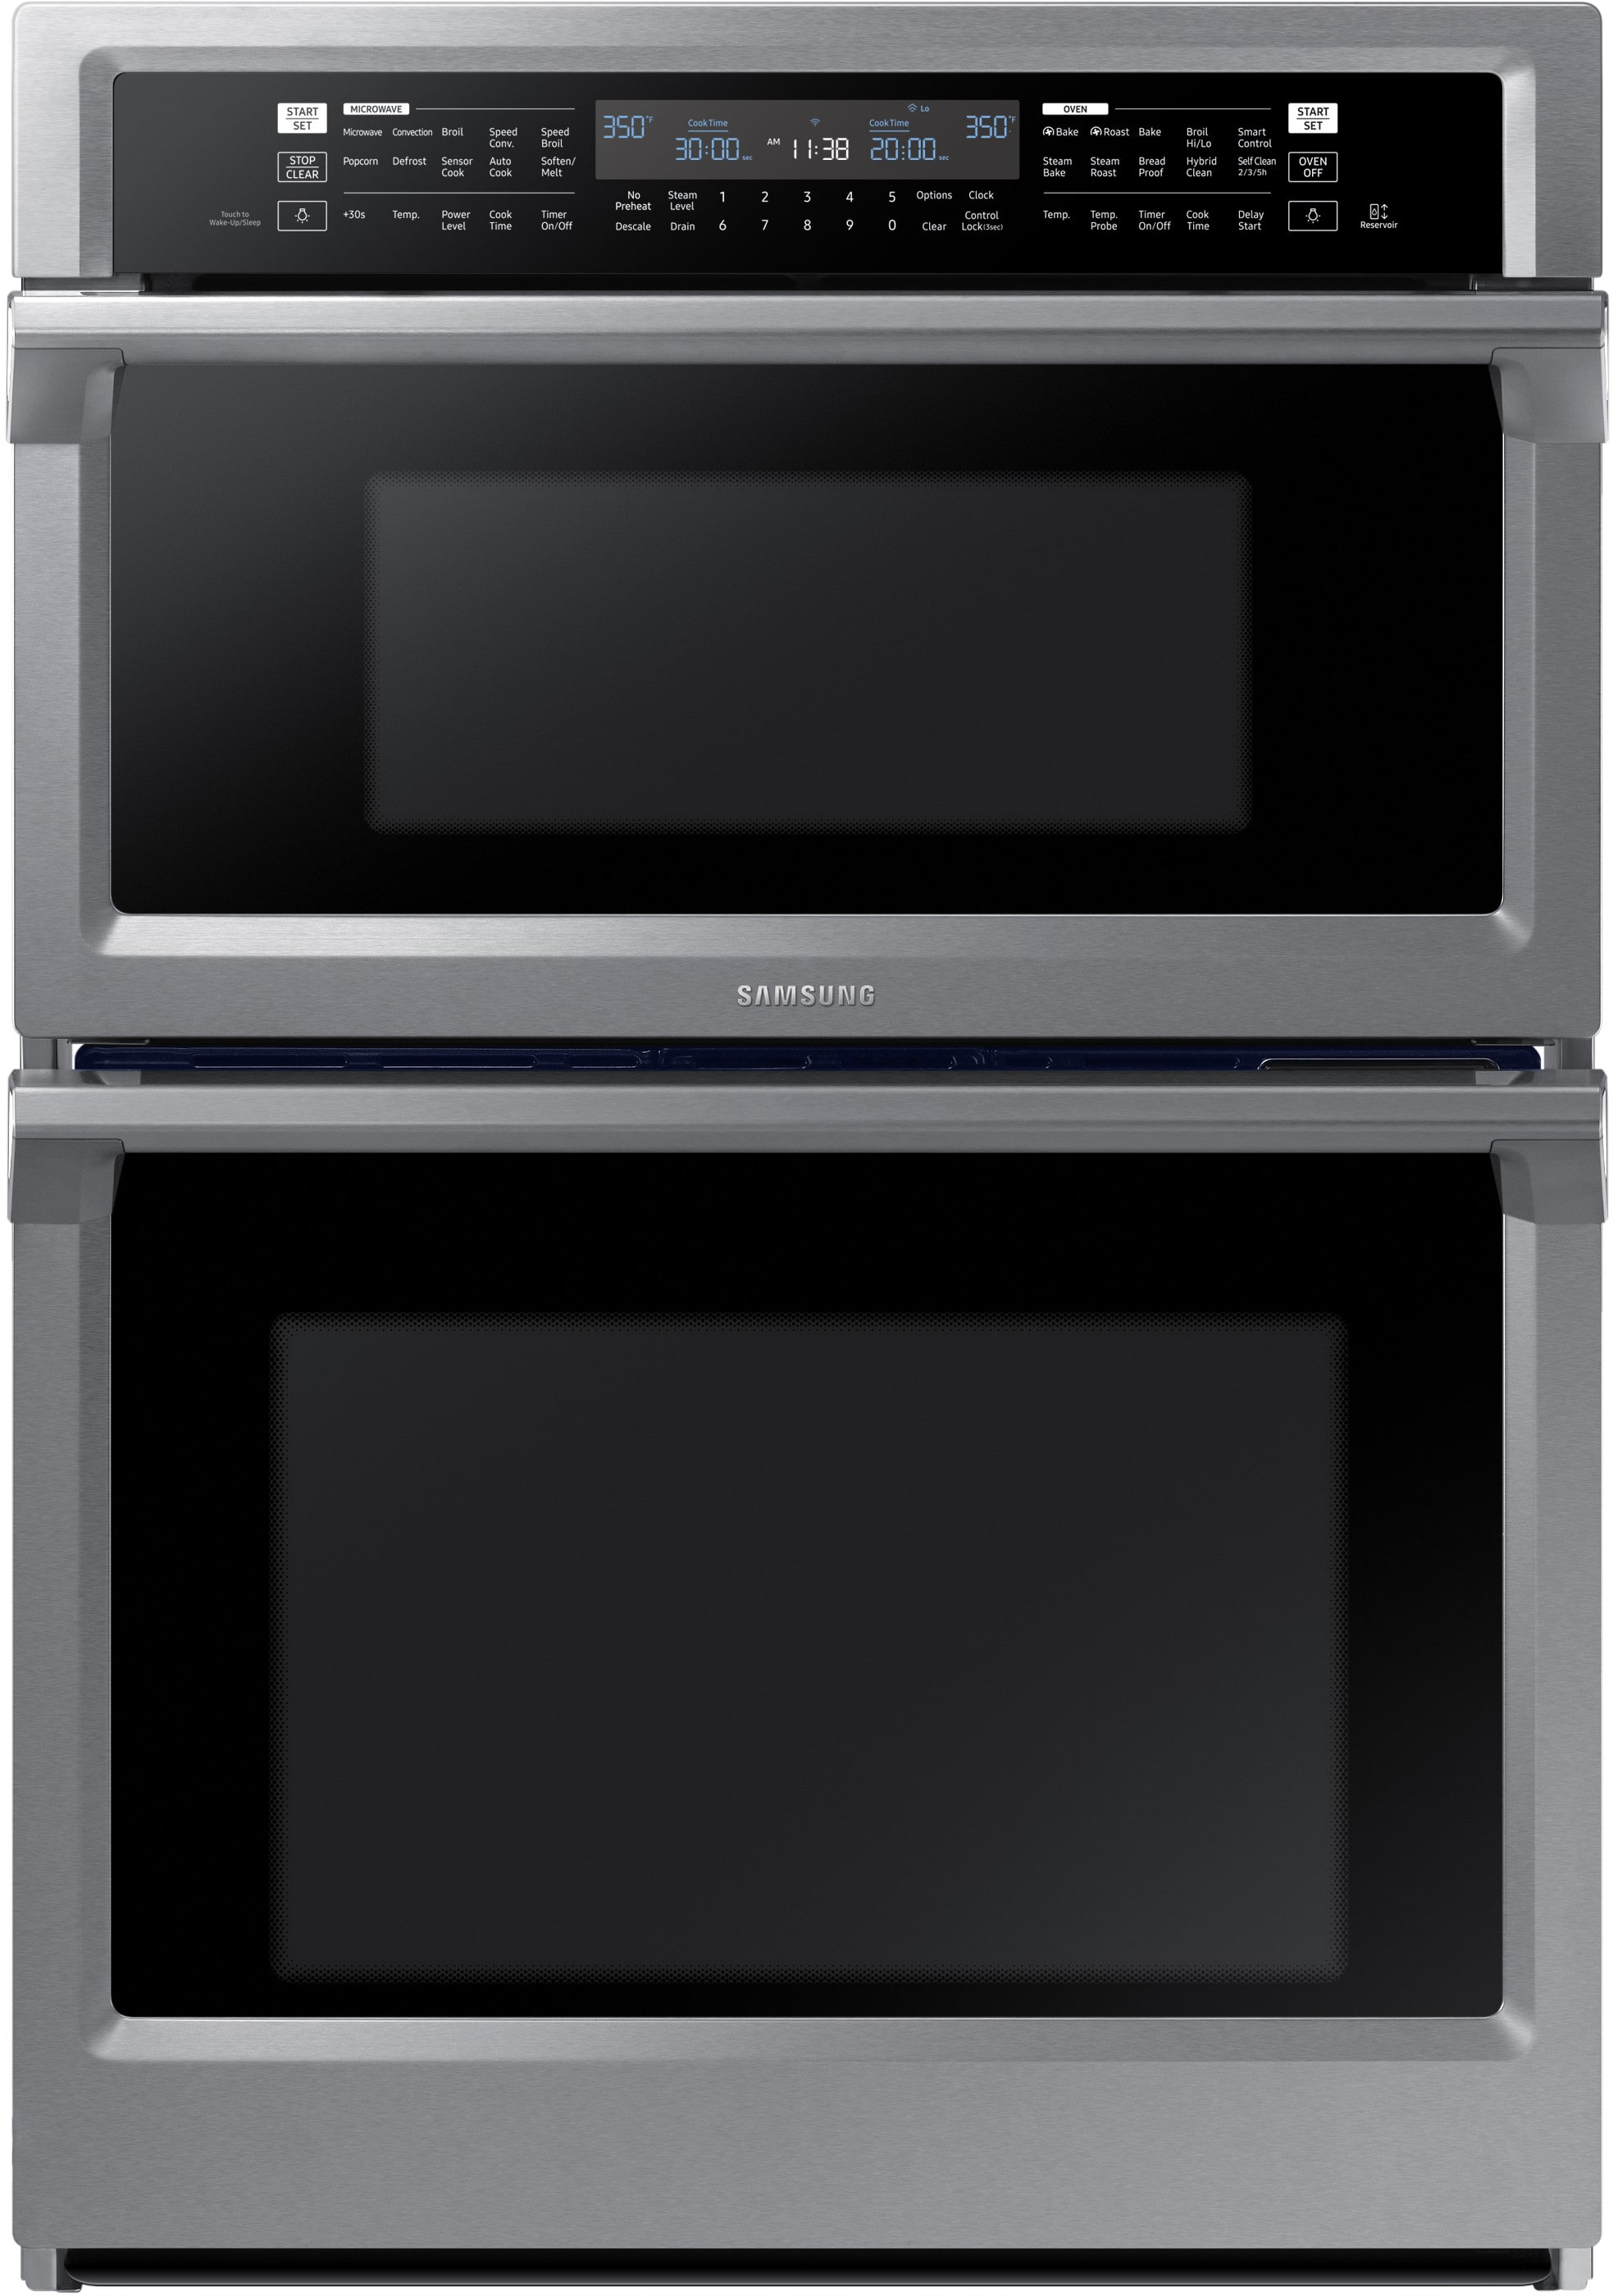 Samsung Nq70m6650ds 30 Inch Combination Electric Wall Oven